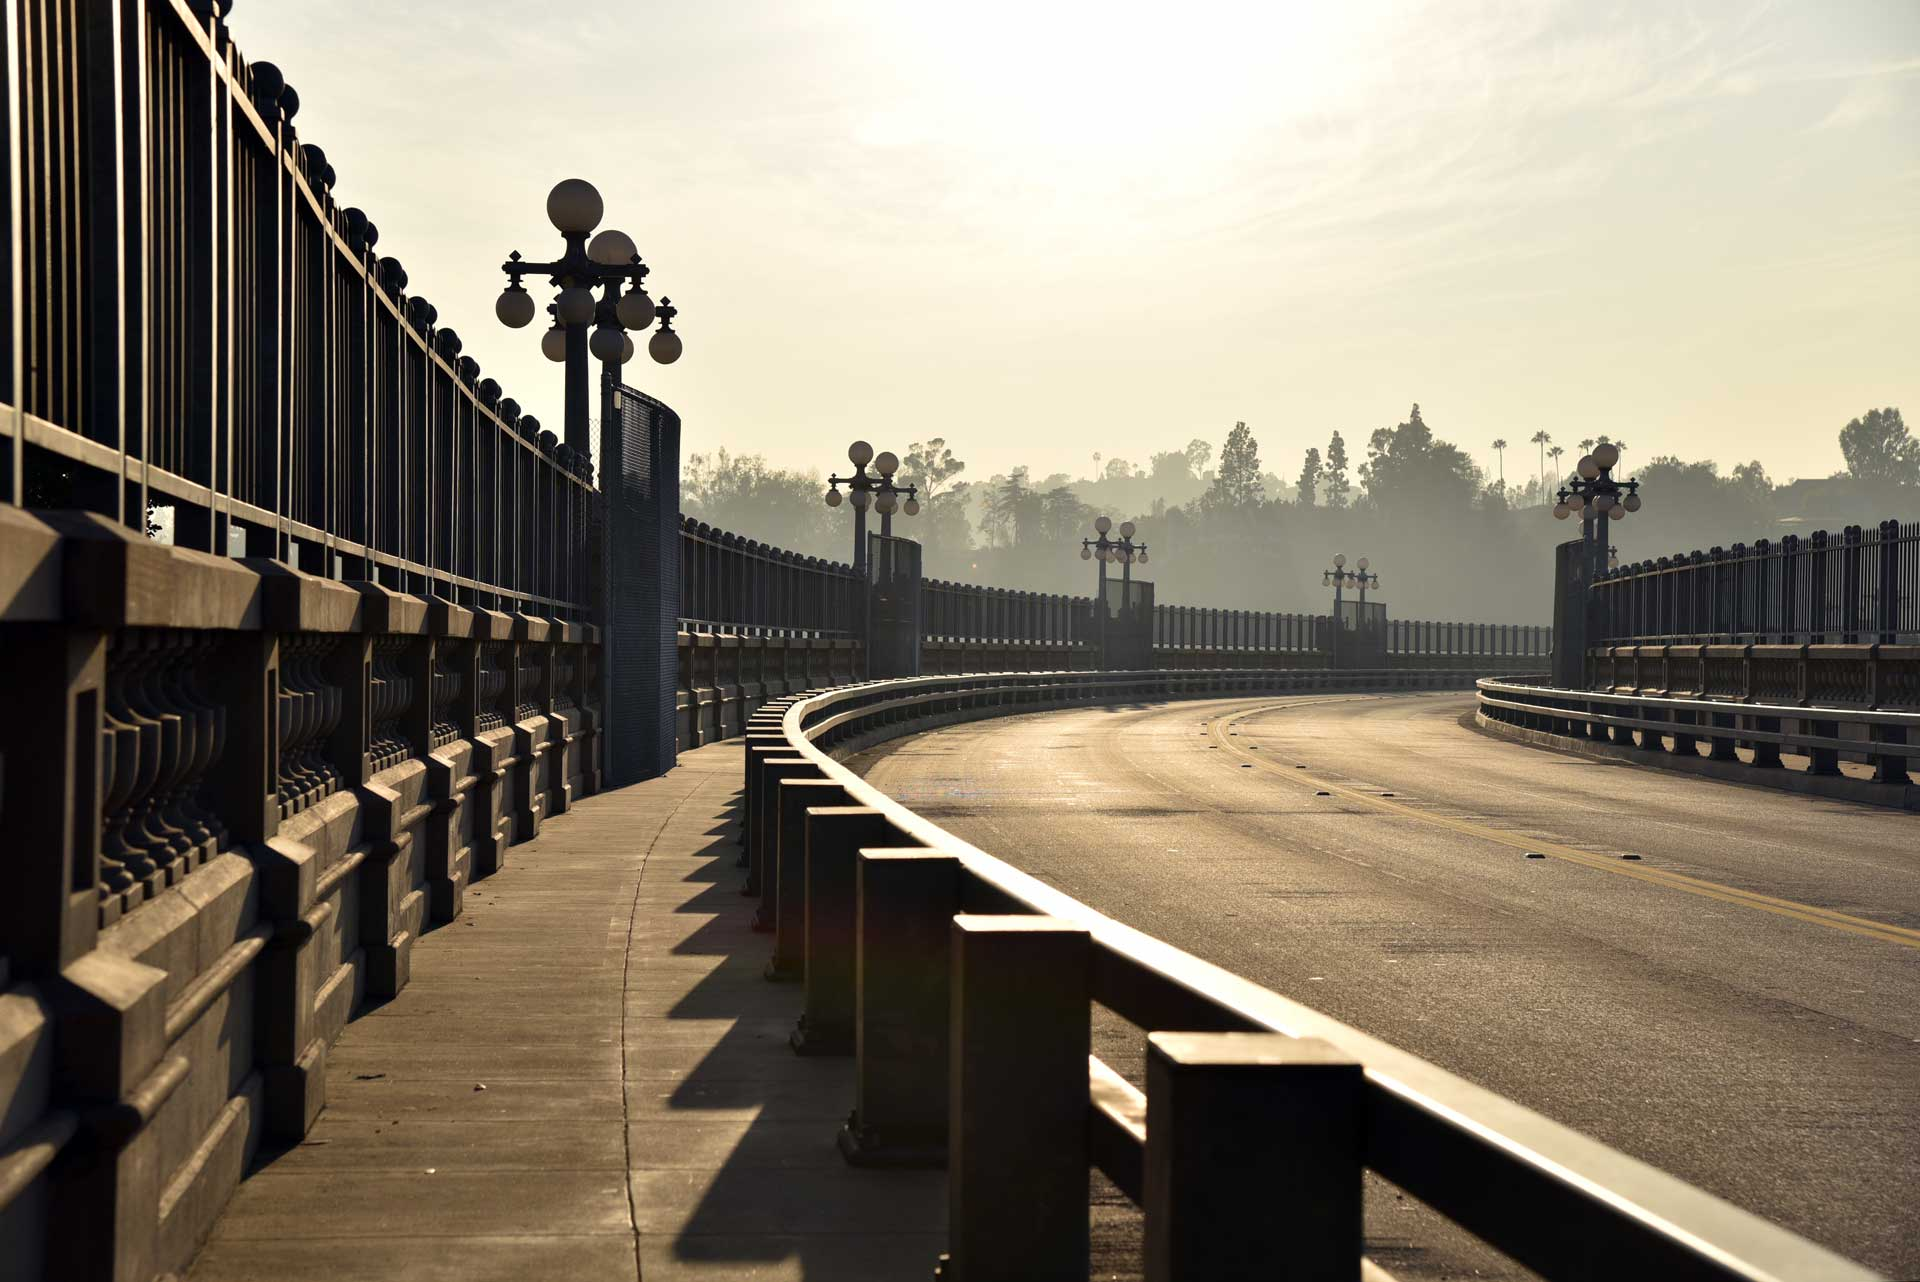 pasadena bridge in california with sun shining in the sky